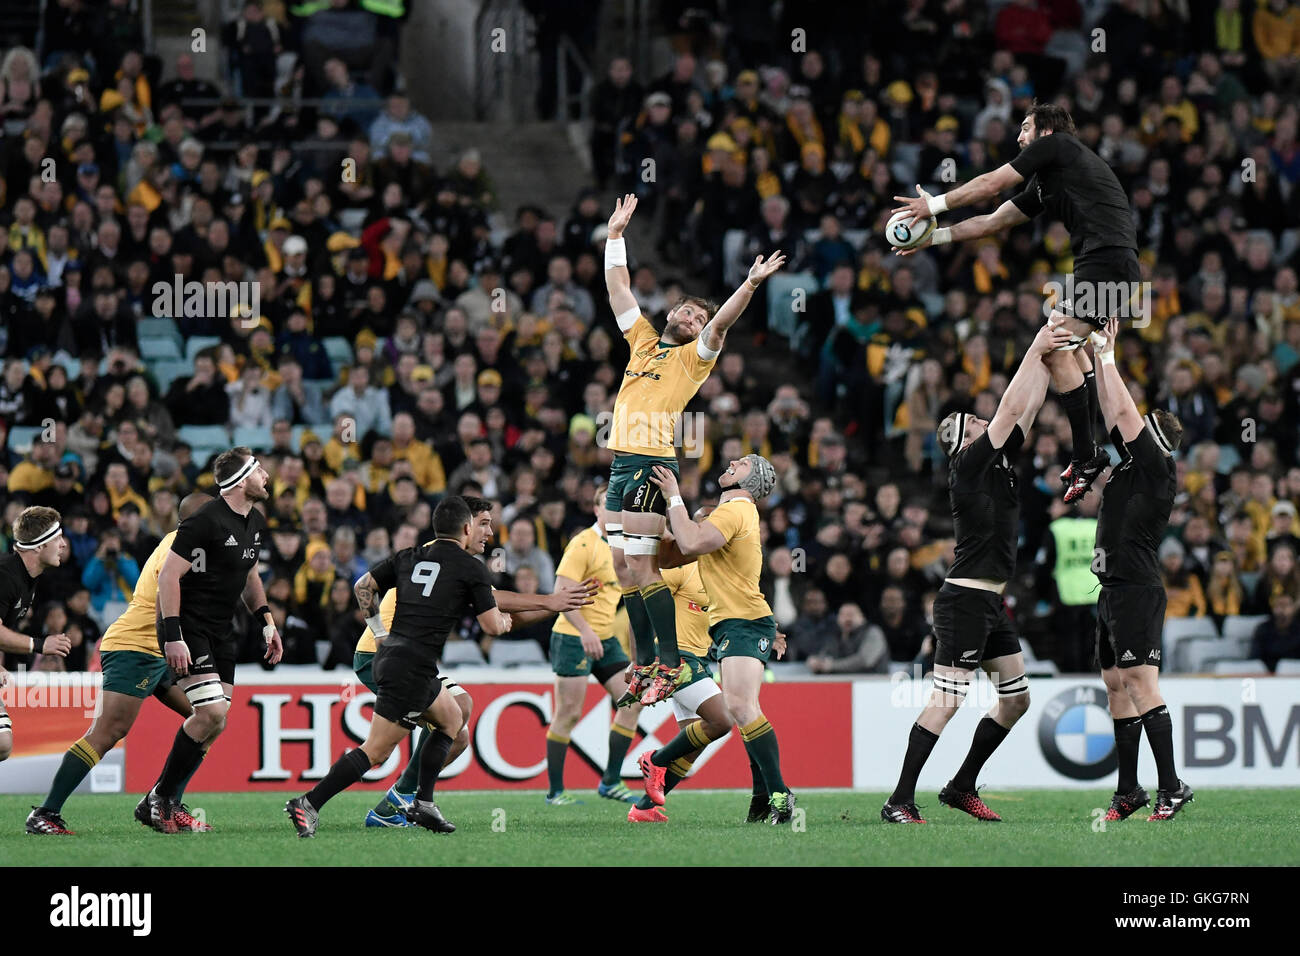 Sydney Australia 20th Aug 2016 The Rugby Championship And Stock Photo Alamy